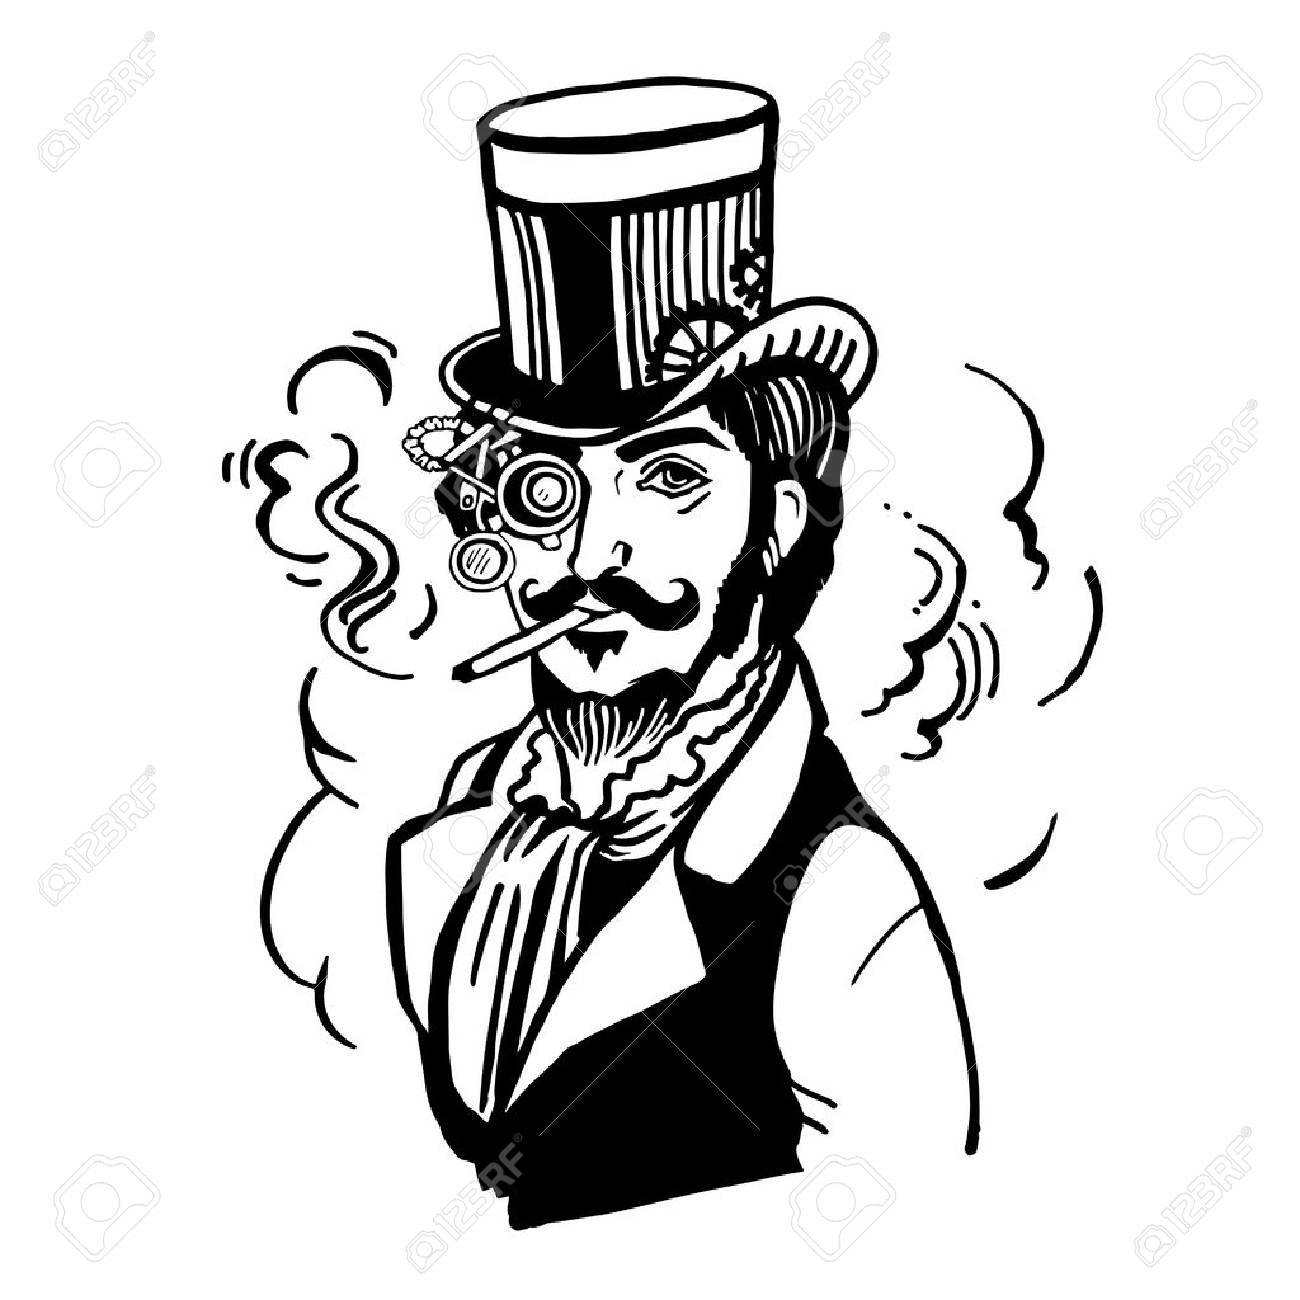 Steampunk man in top hat and glasses with the beard and moustache and a smoking cigarette - 59134391